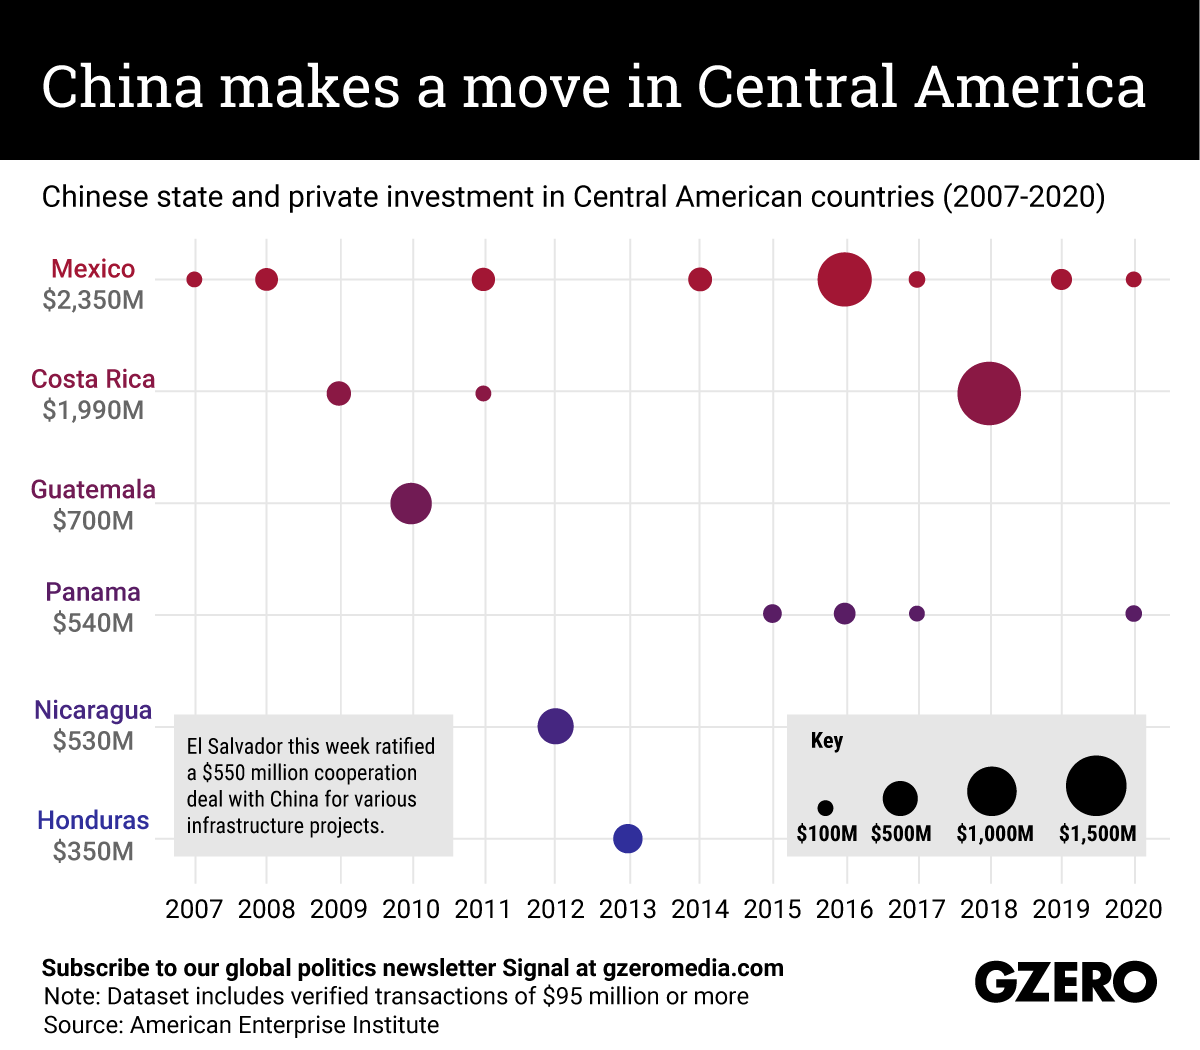 The Graphic Truth: China makes a move in Central America